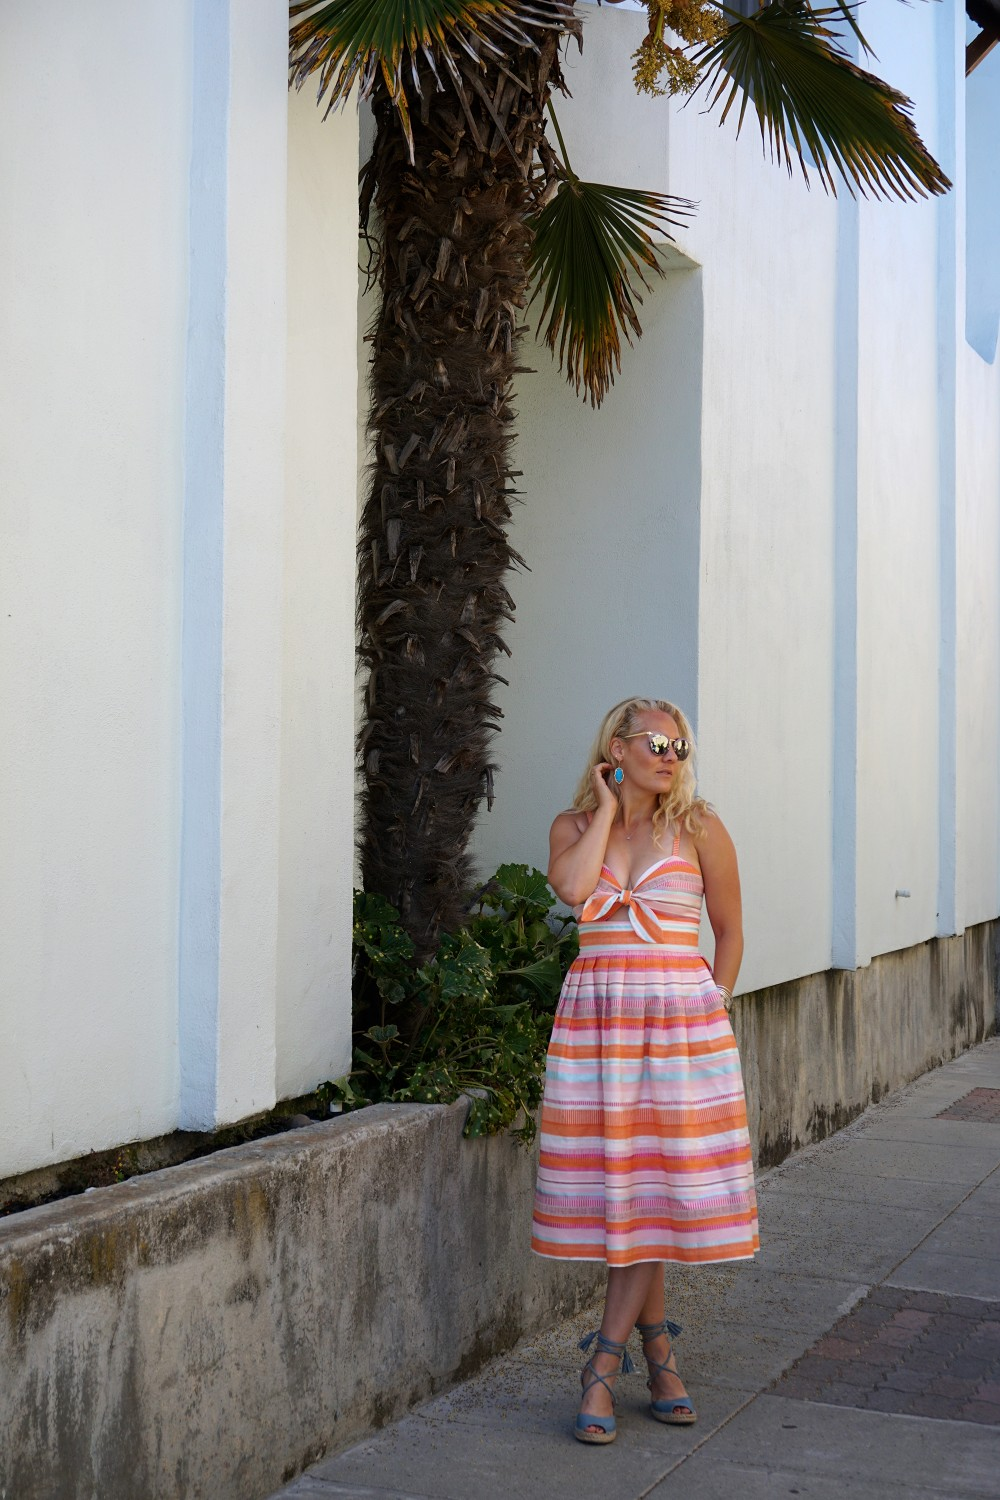 Spring Stripe Dress-Stripes and Cut Outs-Outfit Inspiration-Bay Area Blogger-Summer Dress-Sunday Best Outfit Inspiration-Have Need Want 2